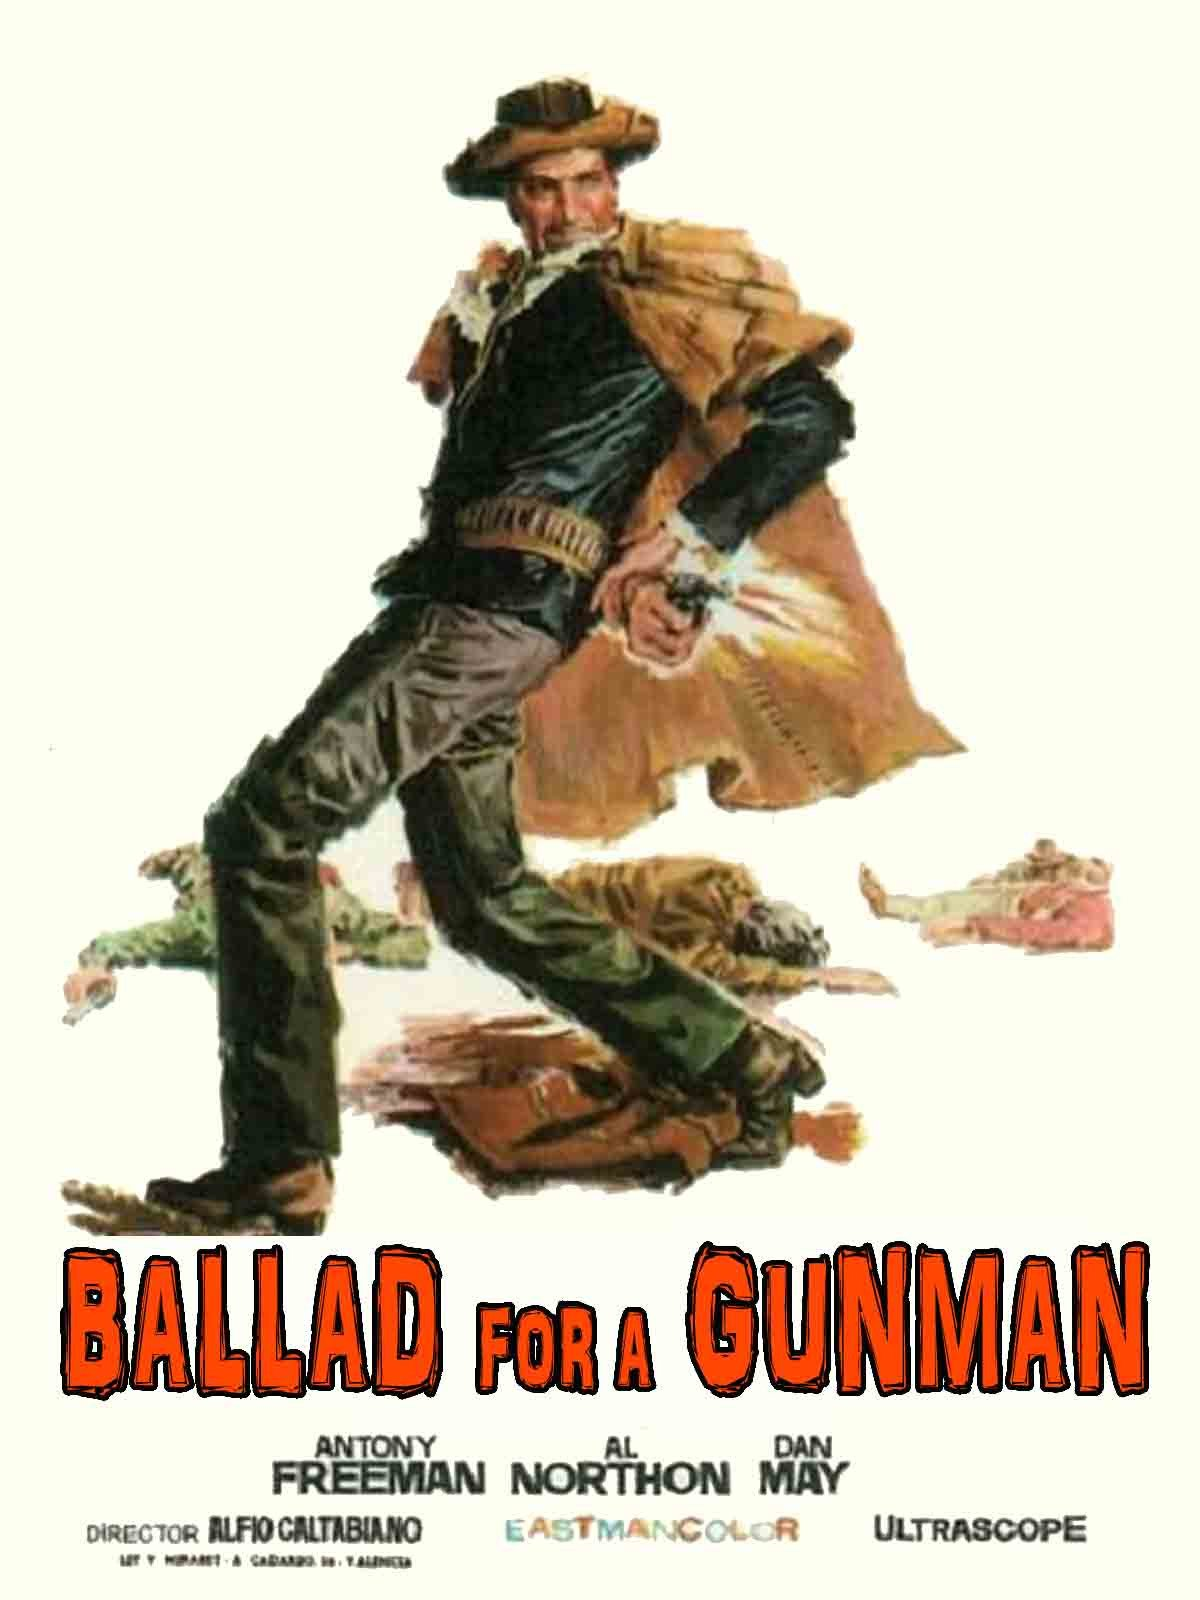 Ballad For A Gunman